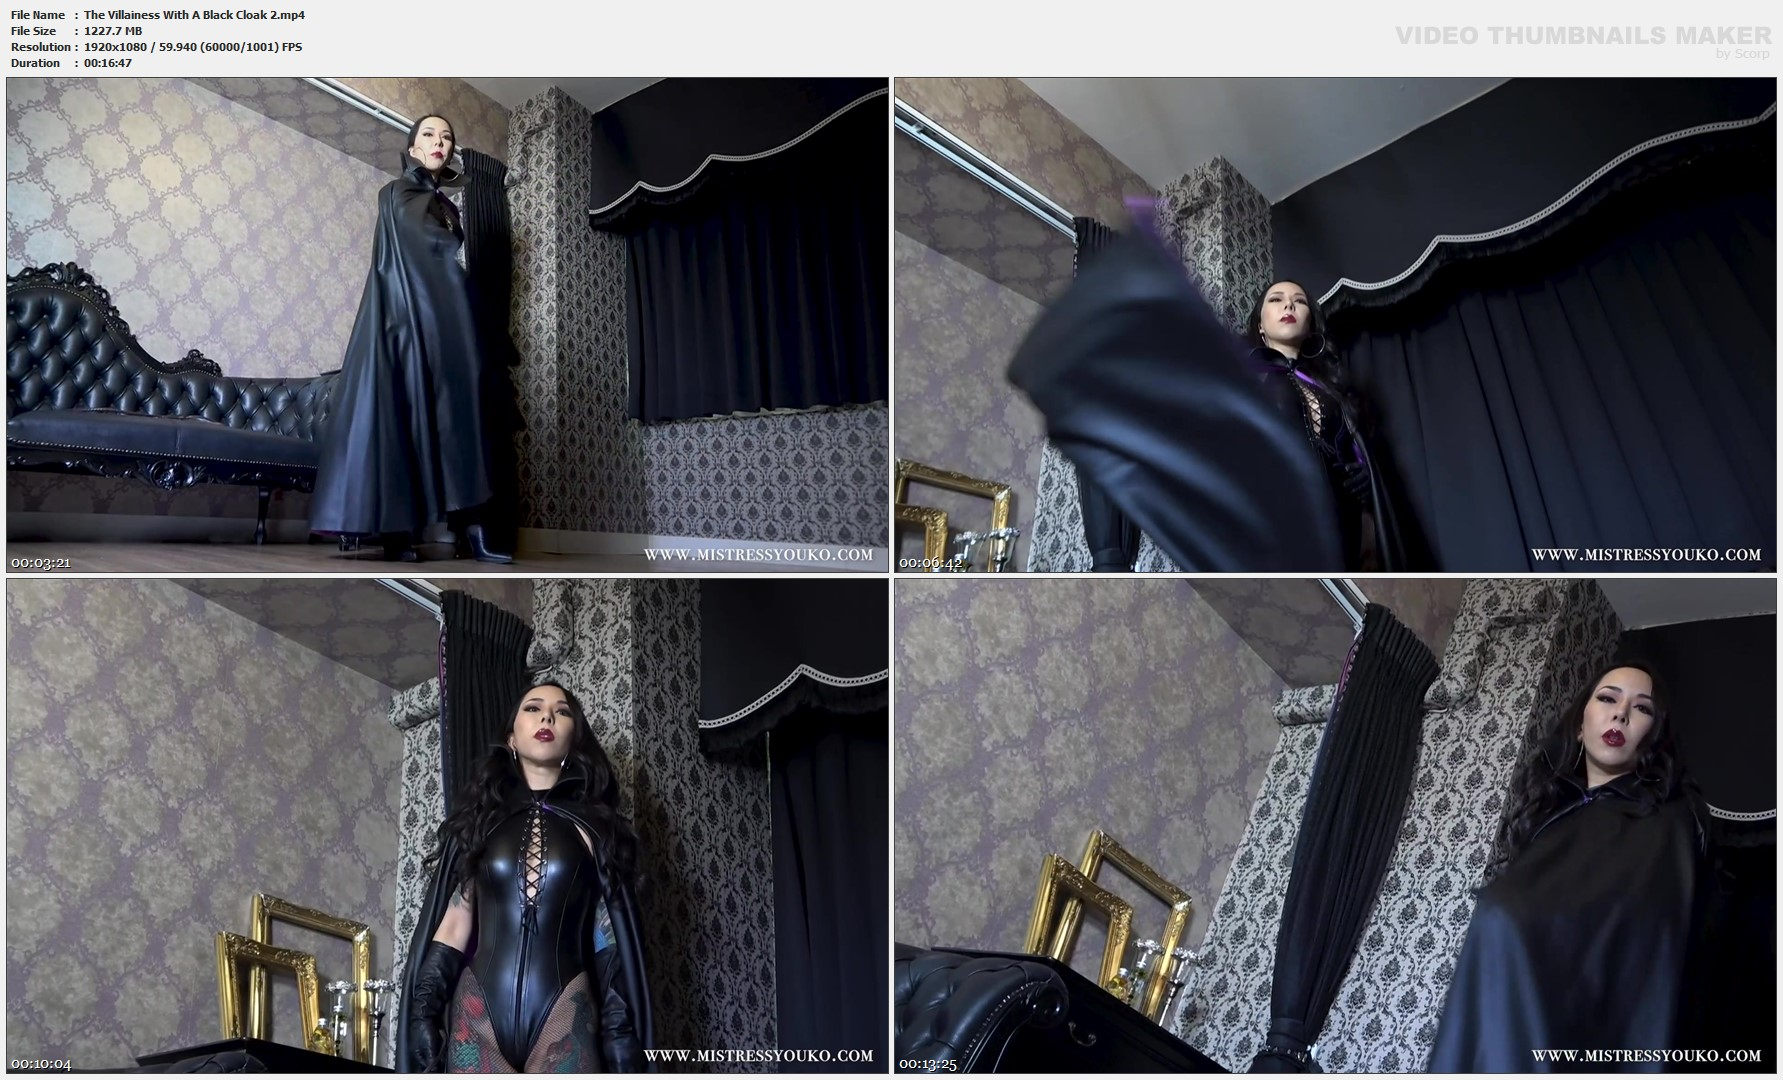 The Villainess With A Black Cloak 2